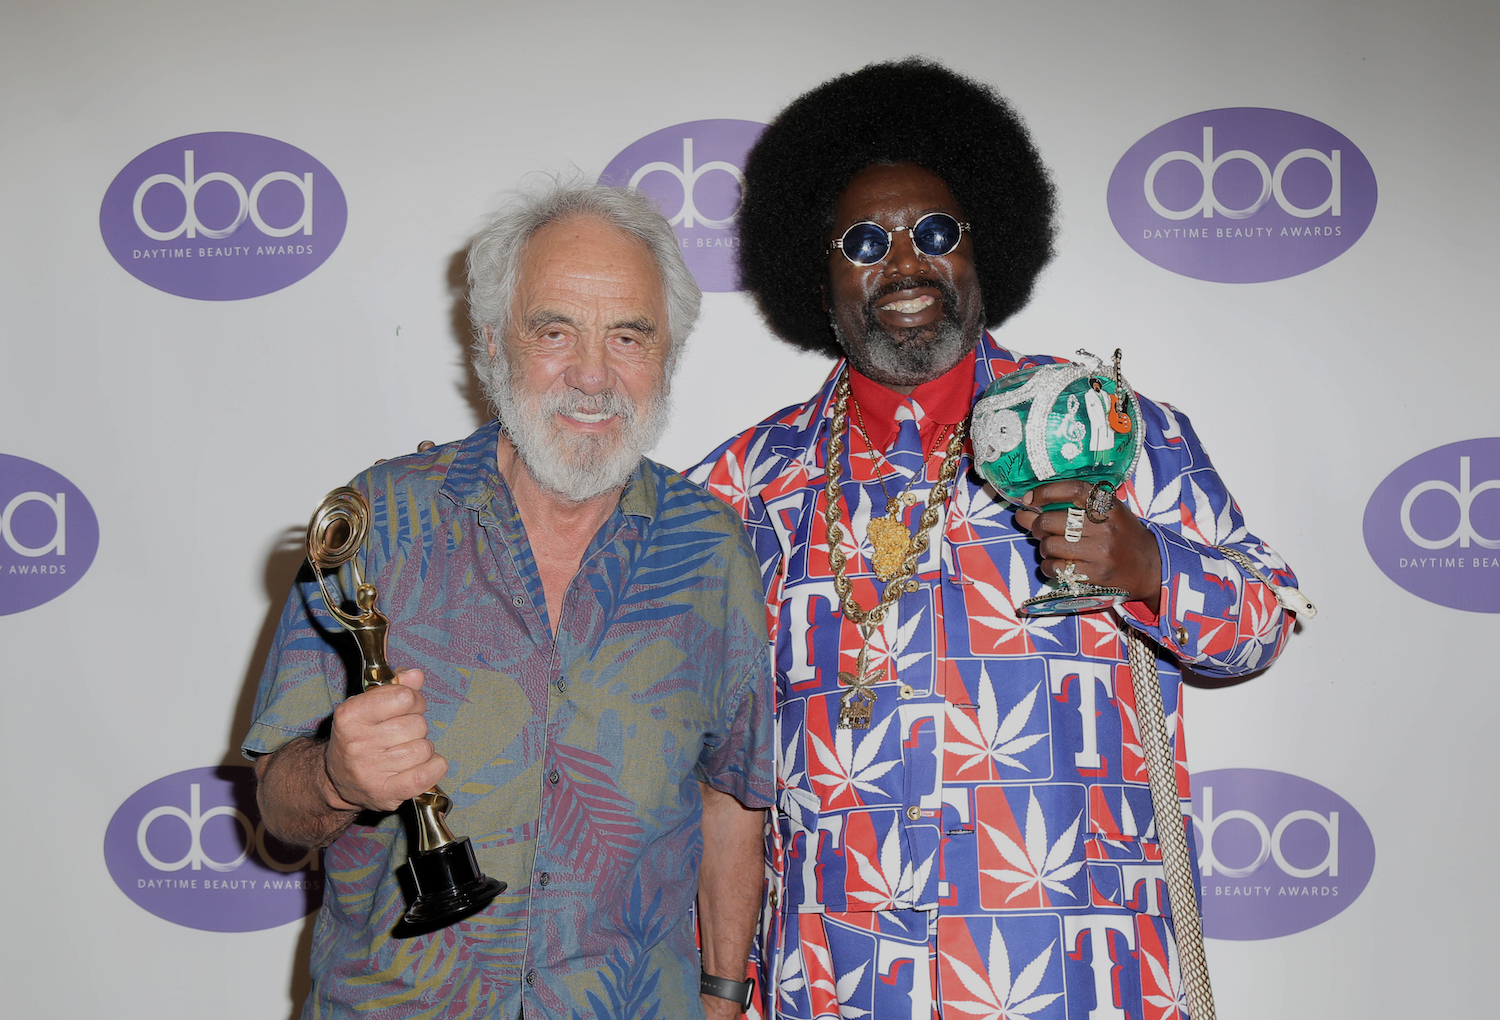 daytime beauty awards, tommy chong, five point holdings, afroman